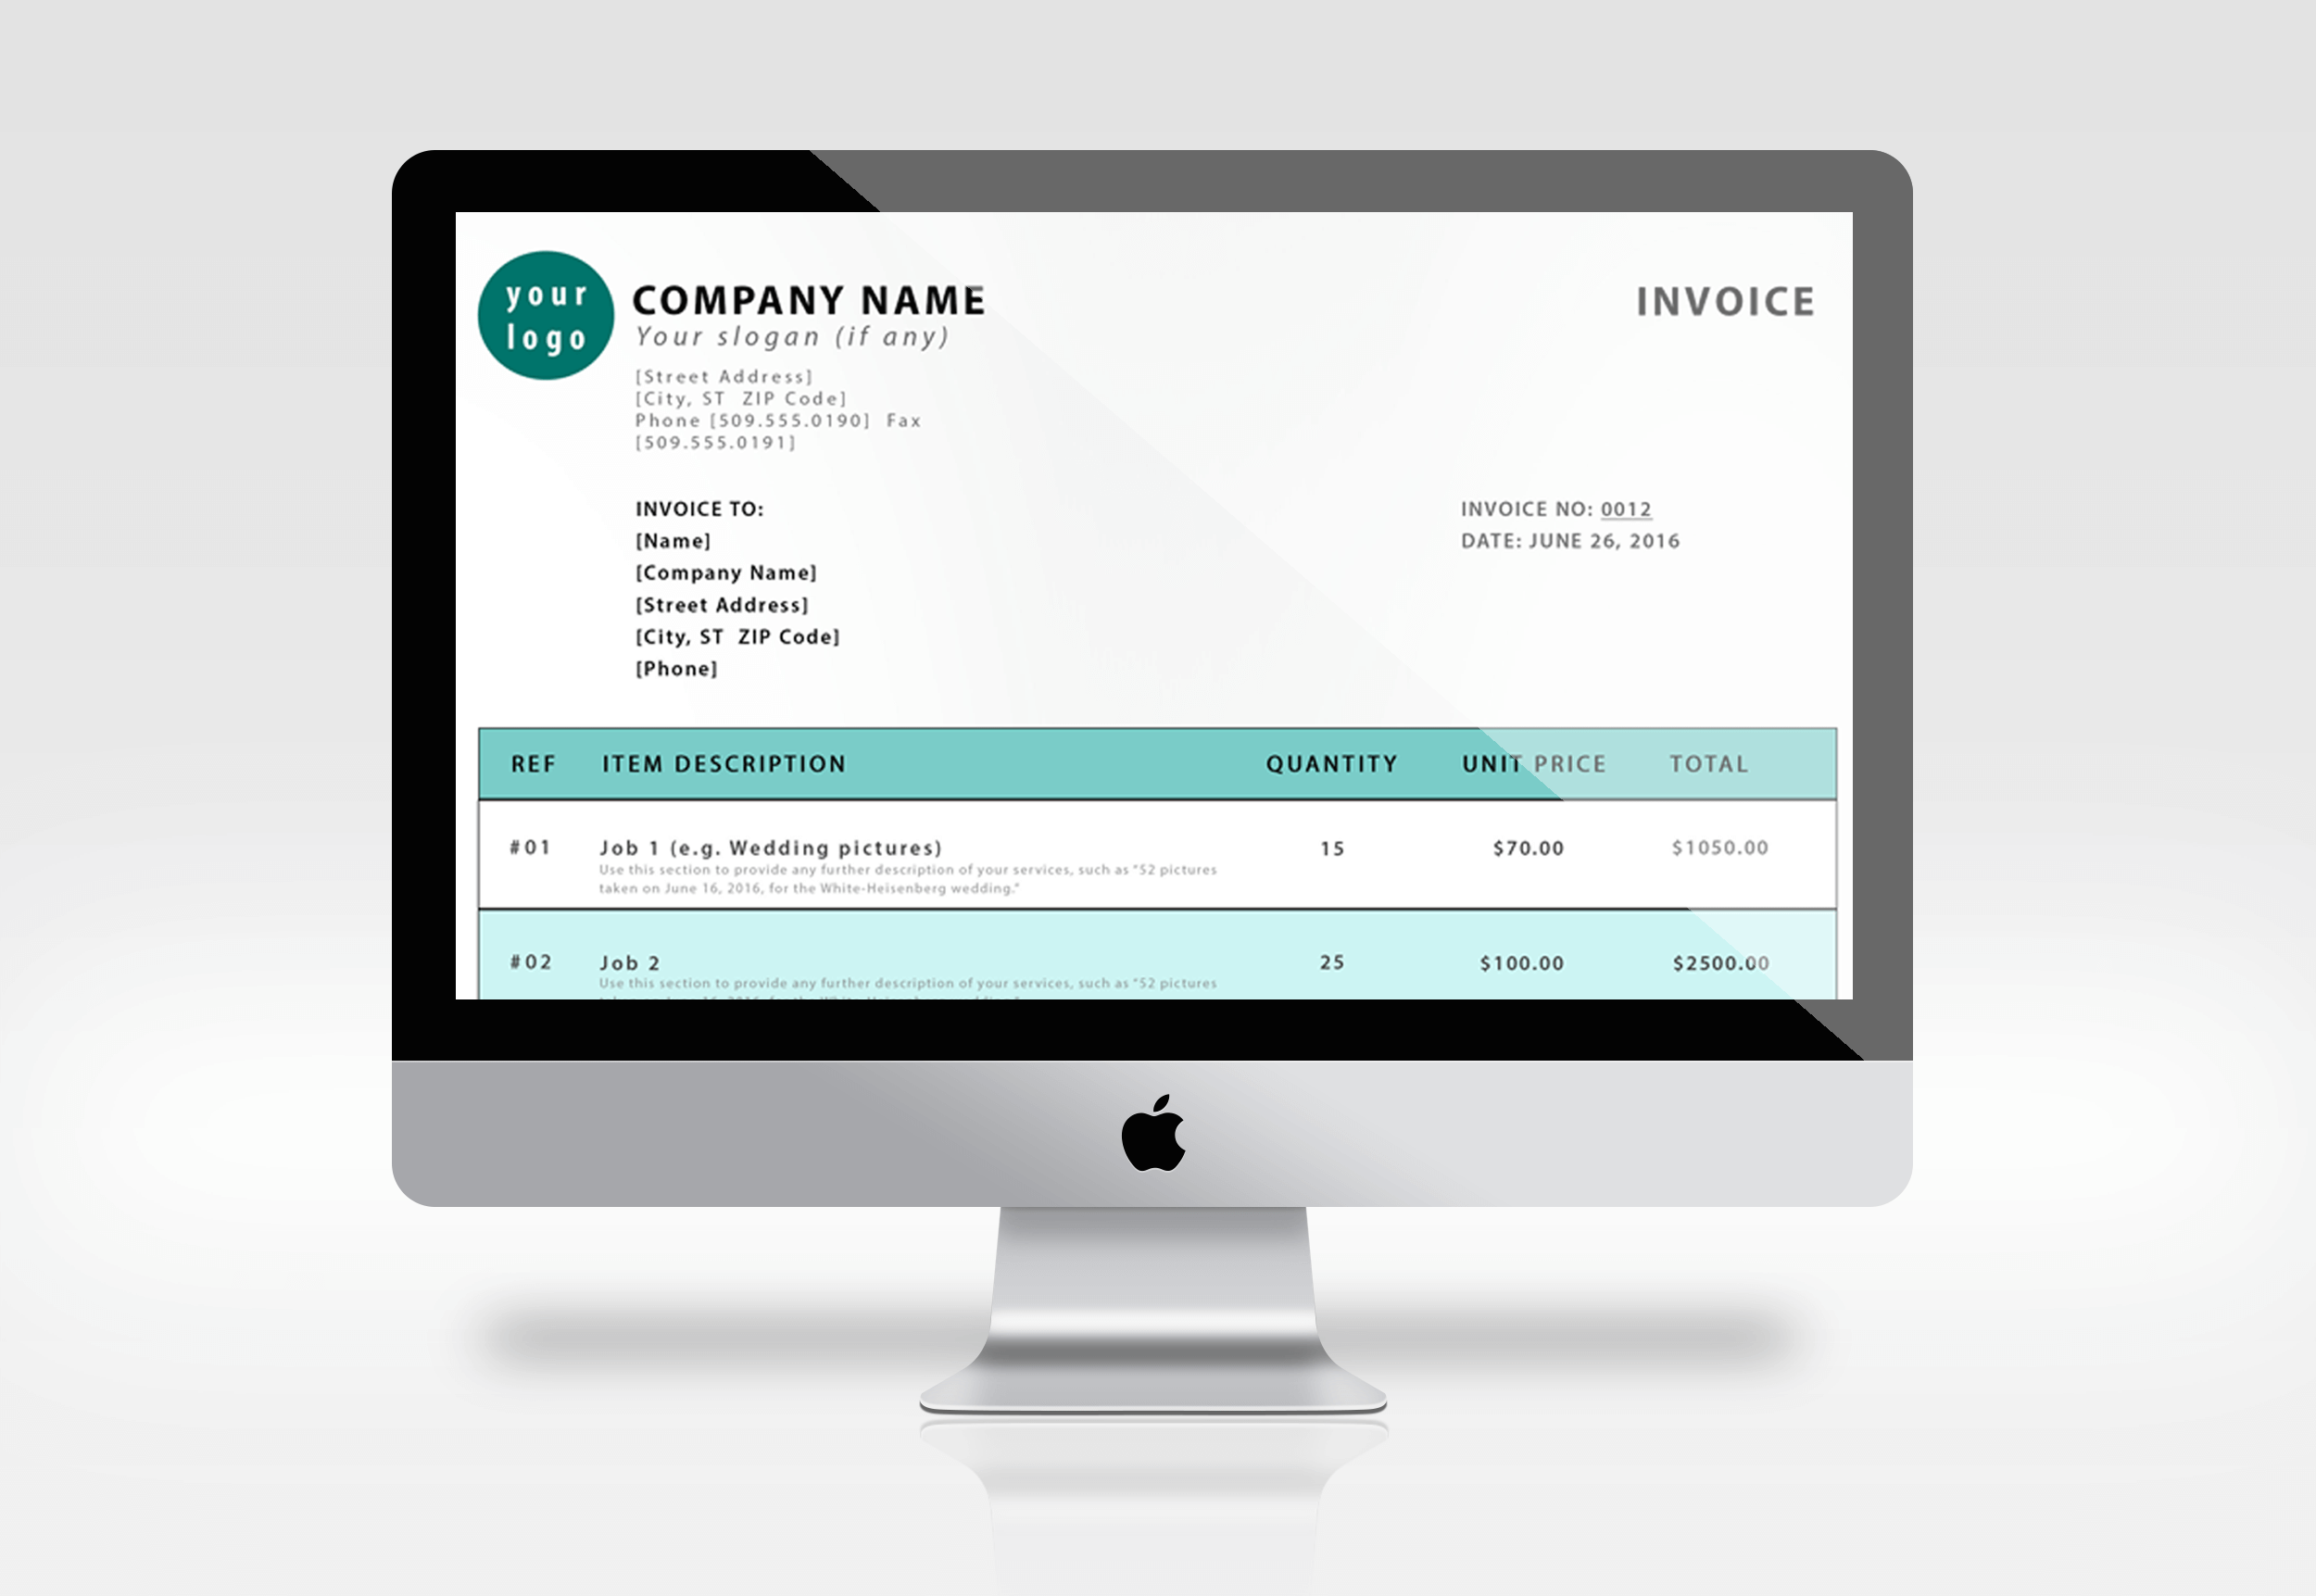 You Can Use Our Sphere Tech Free PSD Invoice Template On Your Laptop,  Tablet Or  Mock Invoice Template